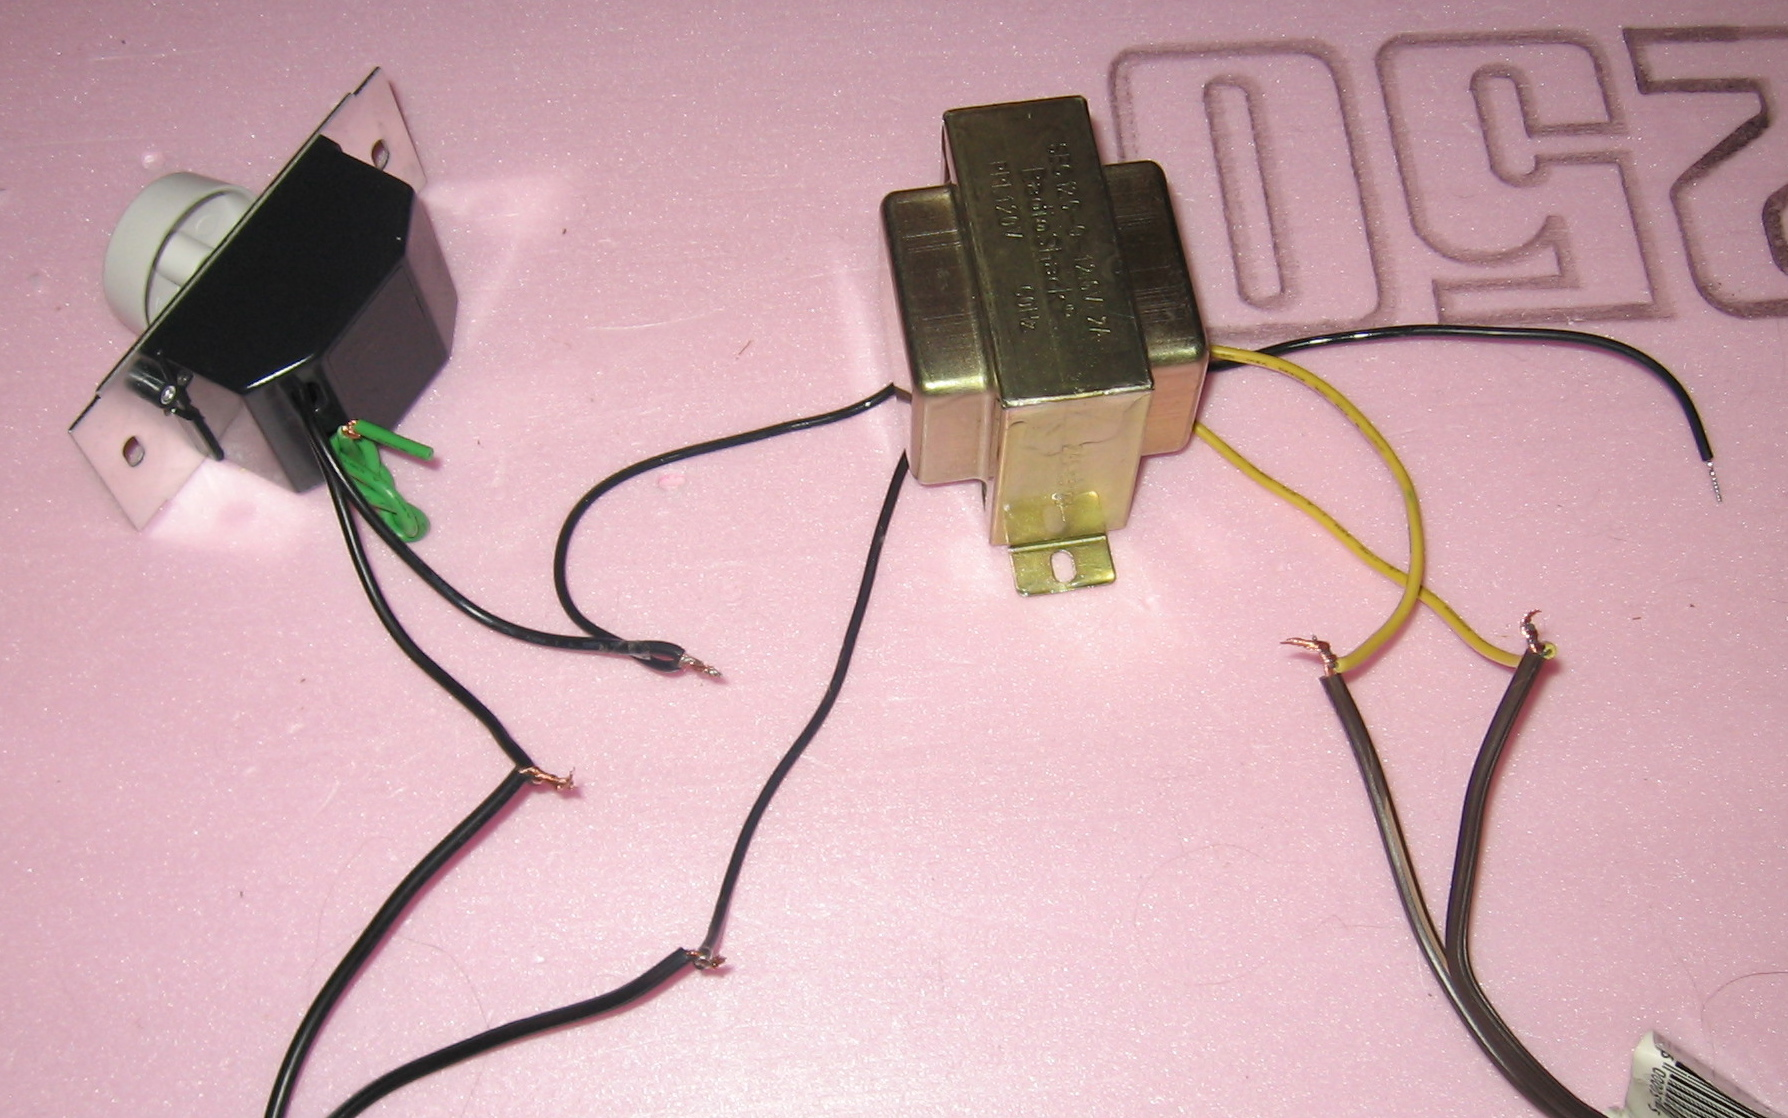 Picture of Wiring Up the Transformer and Dimmer Switch